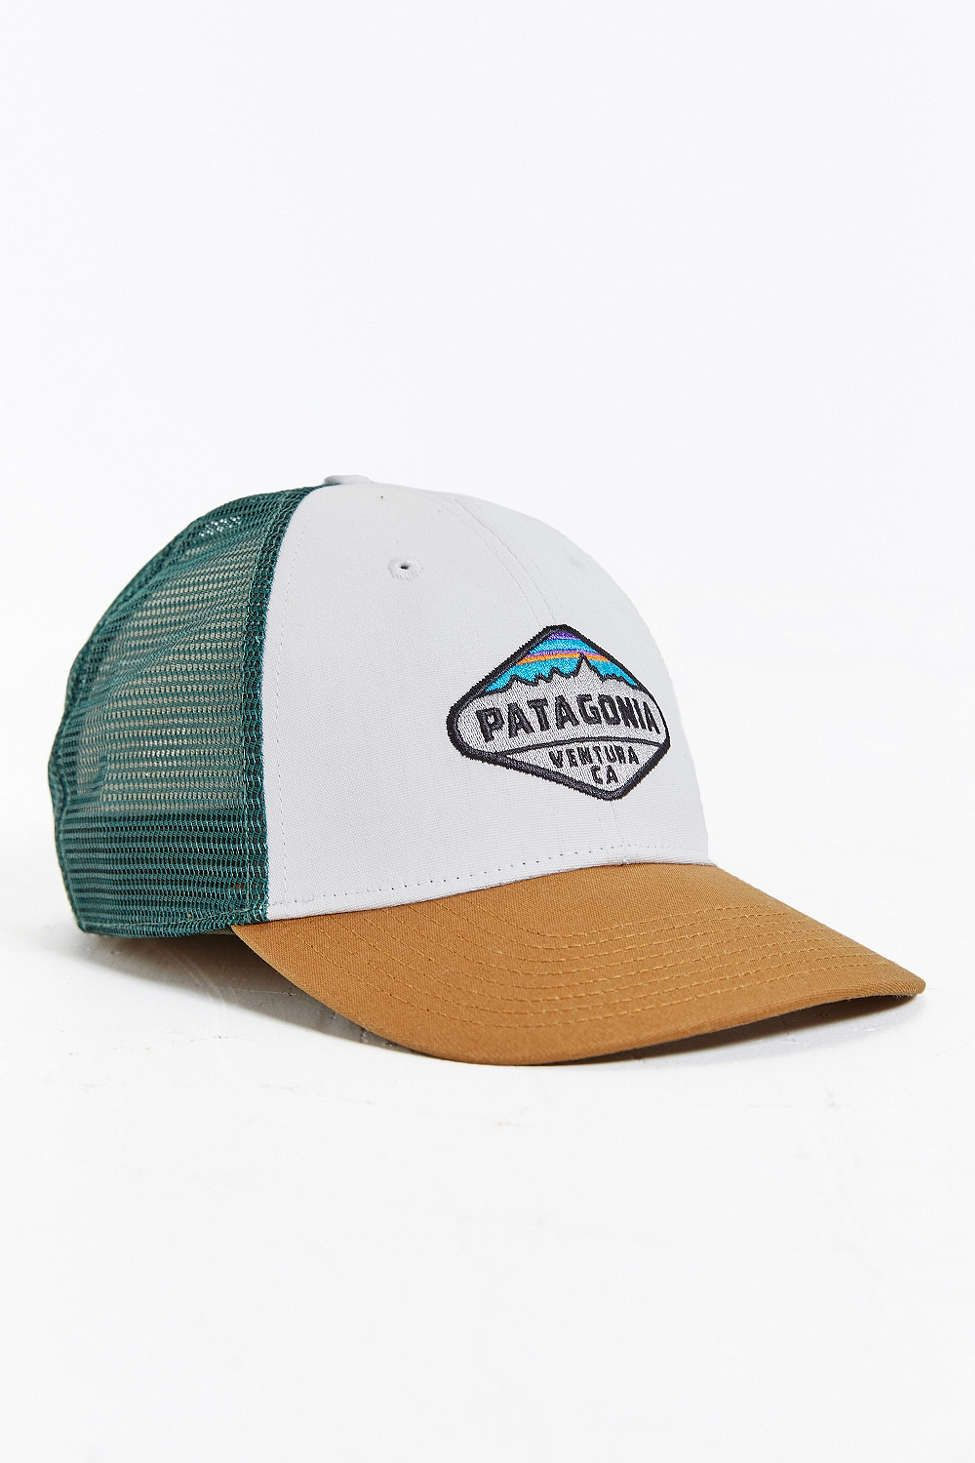 69466174643 Patagonia Fitz Roy Crest LoPro Trucker Hat - Urban Outfitters ...